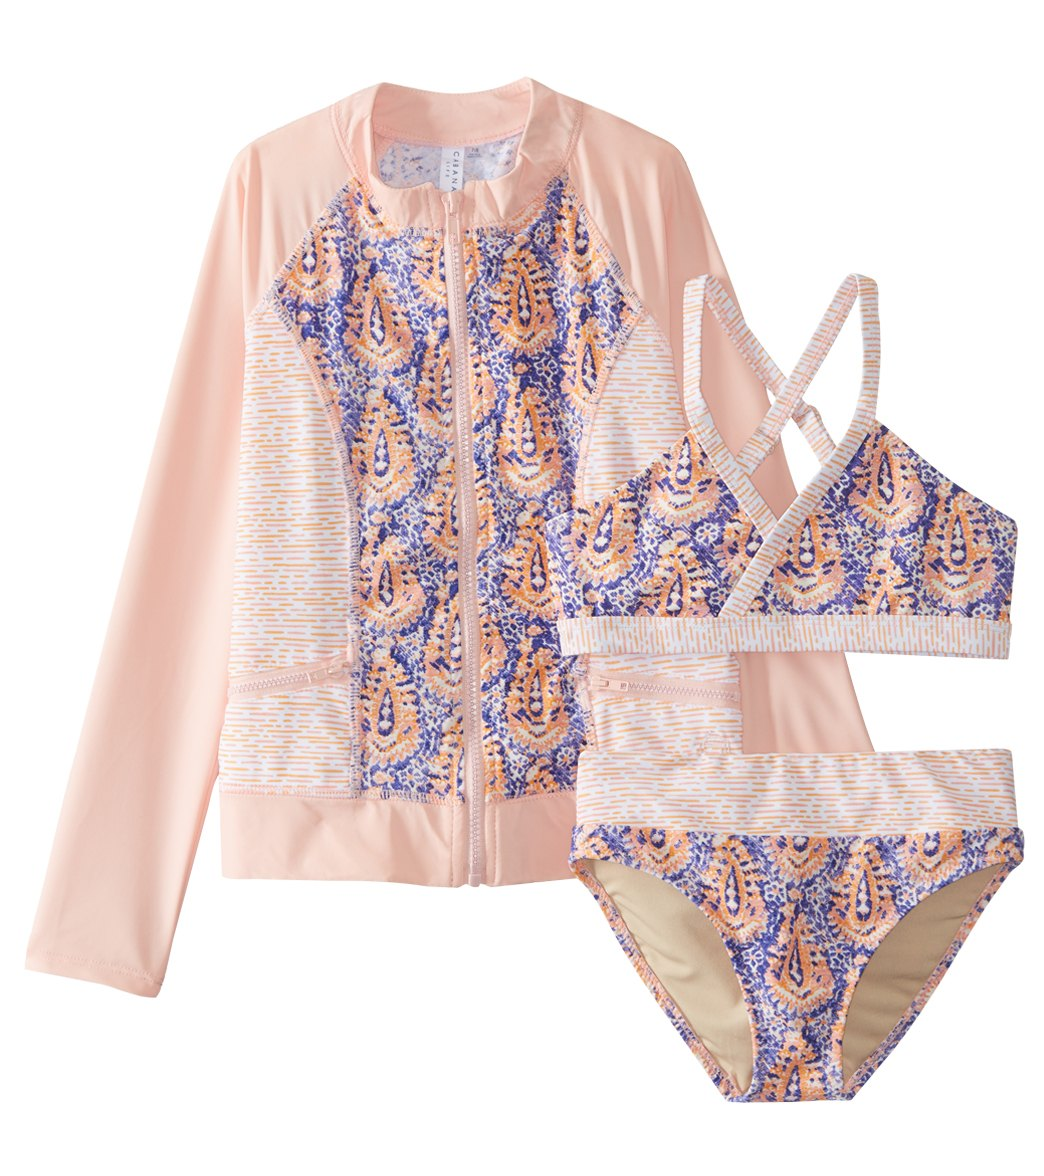 7e3602d109 ... Cabana Life Girls  Jaipur 3 Pc Rashguard Swim Set (Big Kid). Share